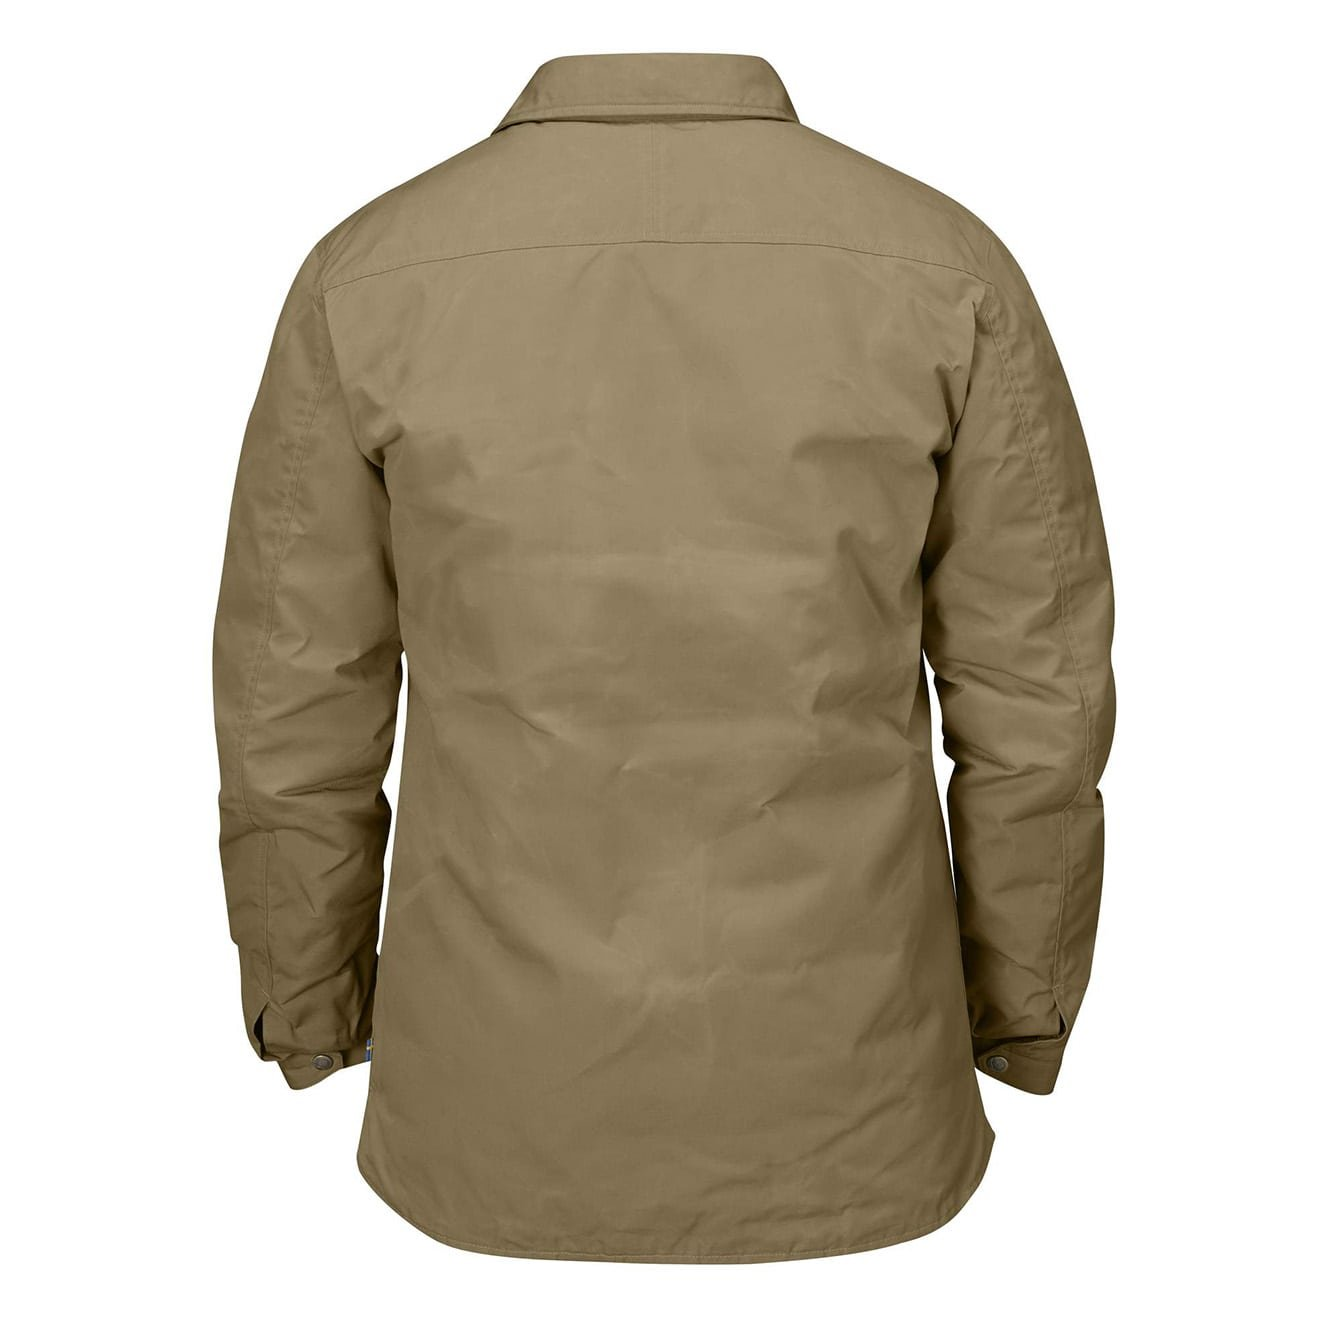 multiple colors good selling on feet shots of Fjallraven Down Shirt Jacket No. 1 Sand - The Sporting Lodge